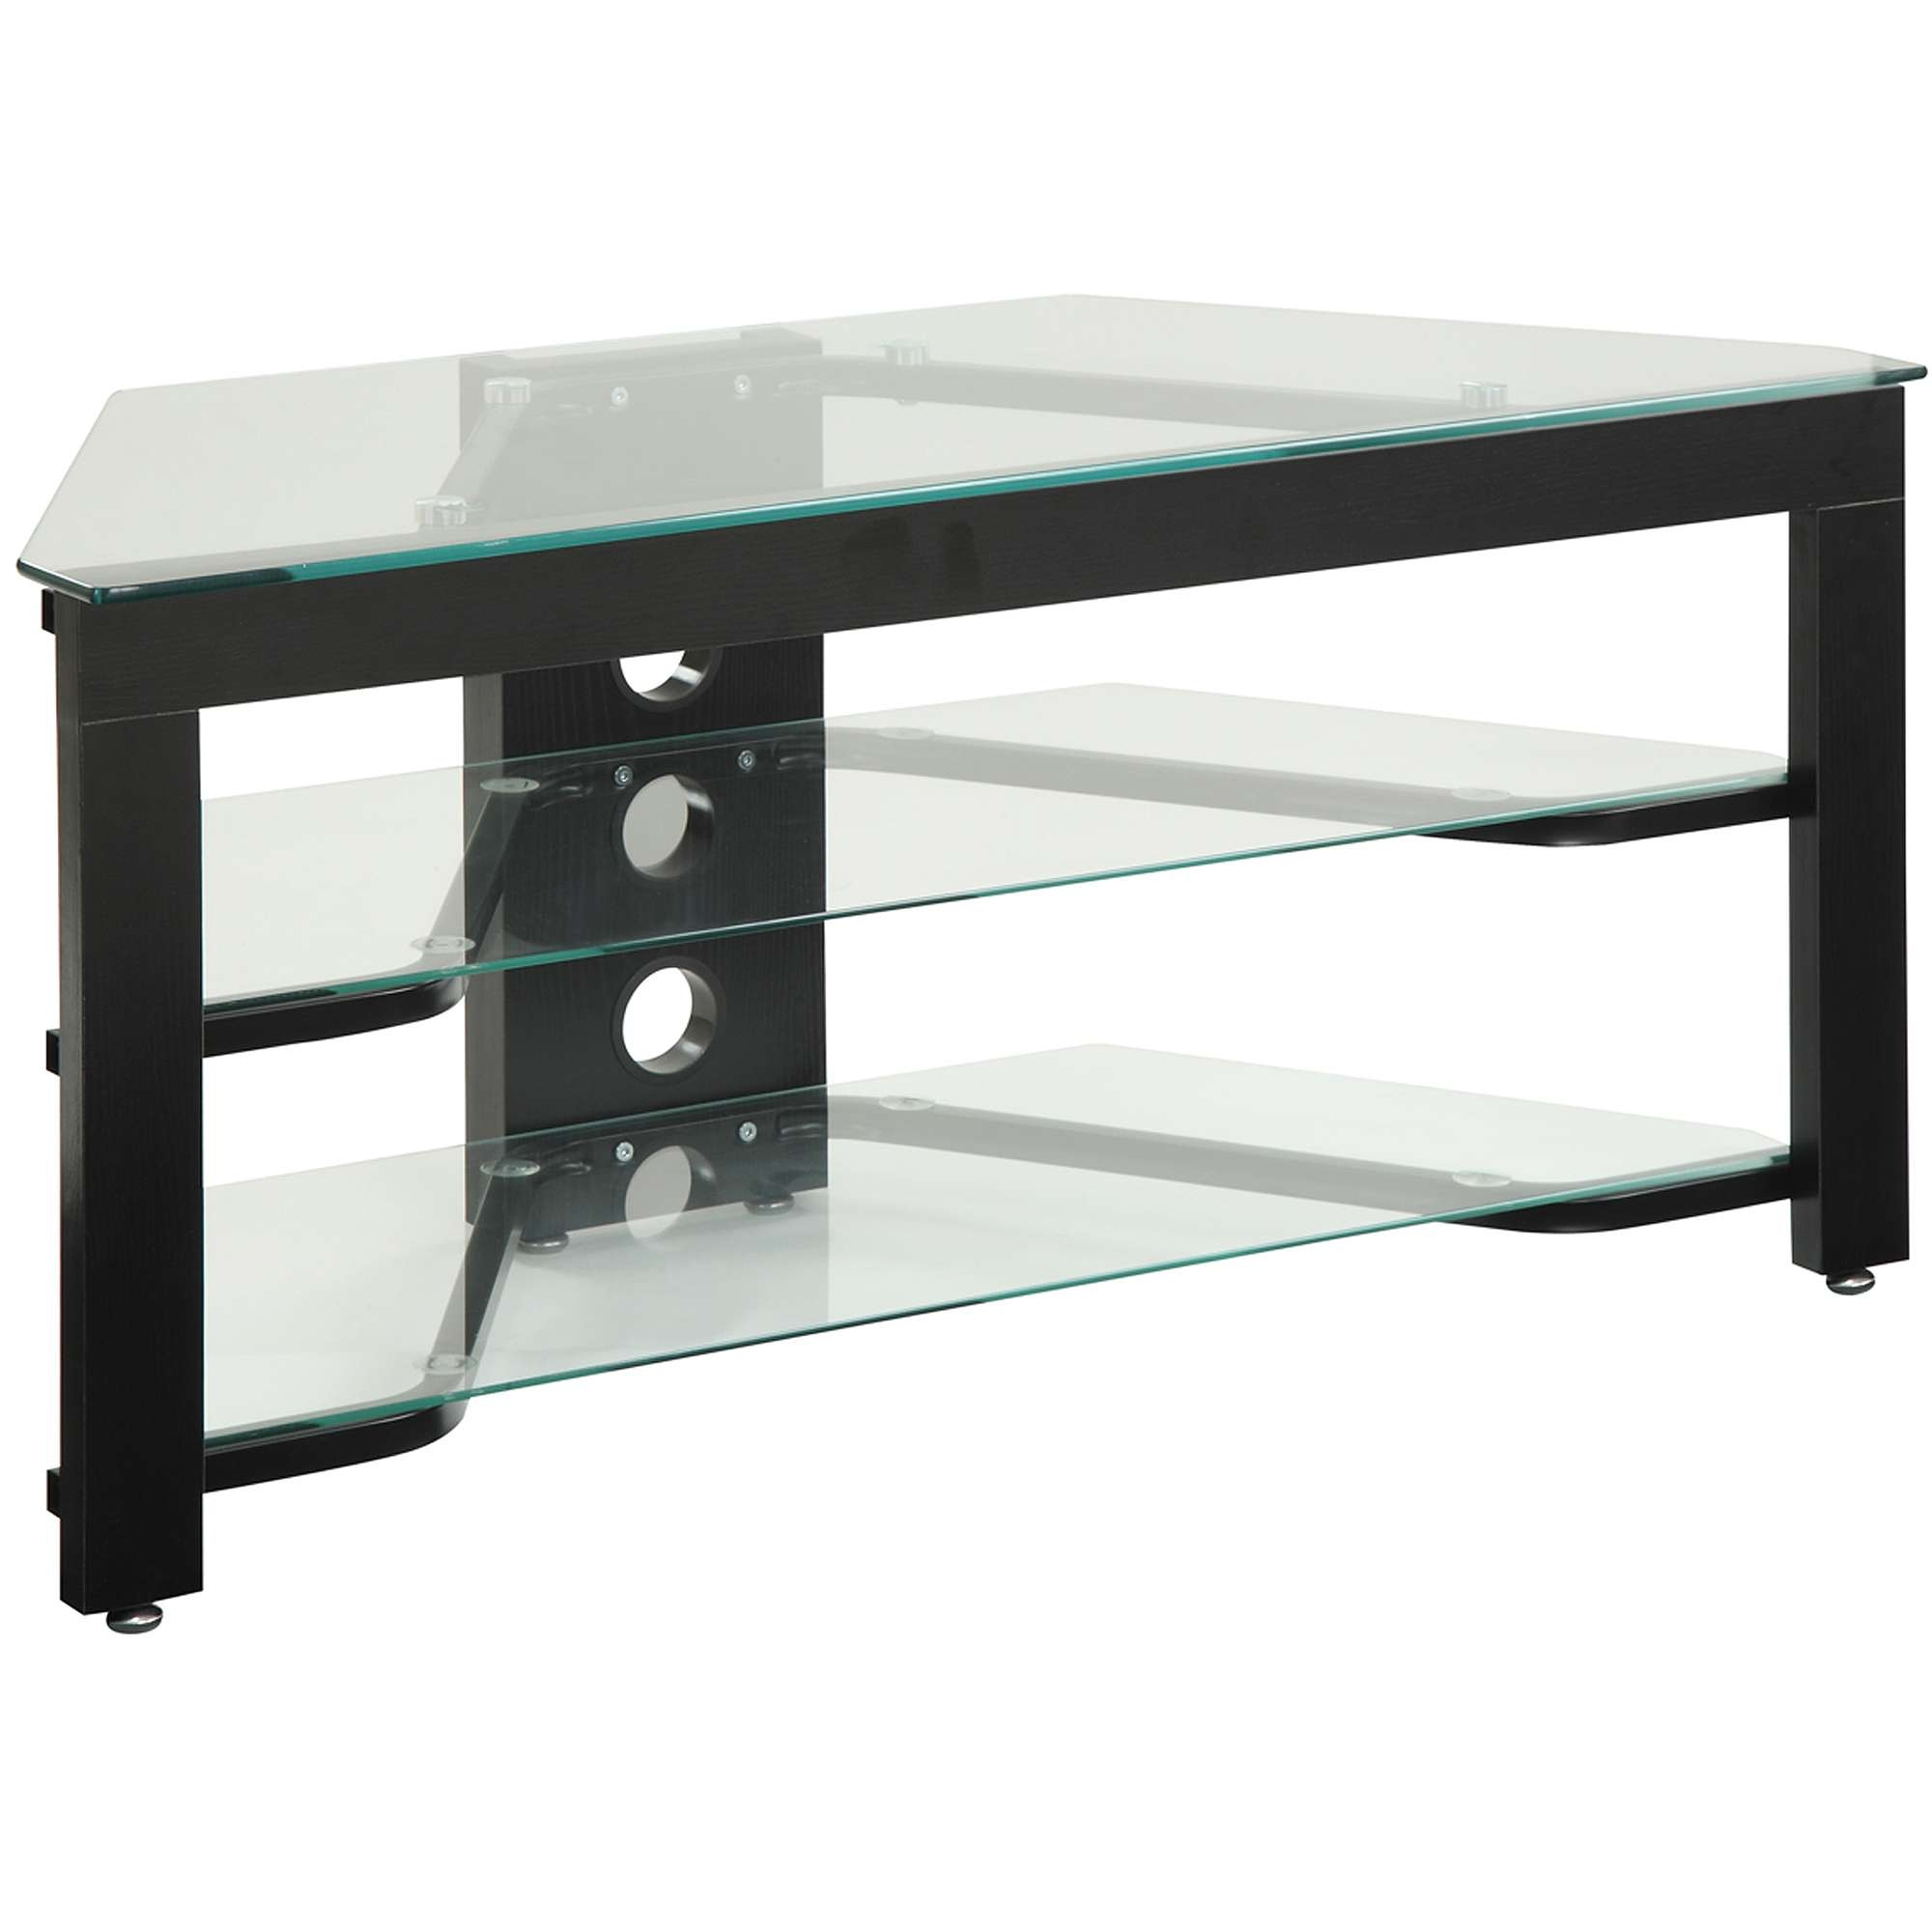 Convenience Concepts Designs2Go Wood And Glass Tv Stand For Tvs Up For Metal And Wood Tv Stands (View 6 of 15)